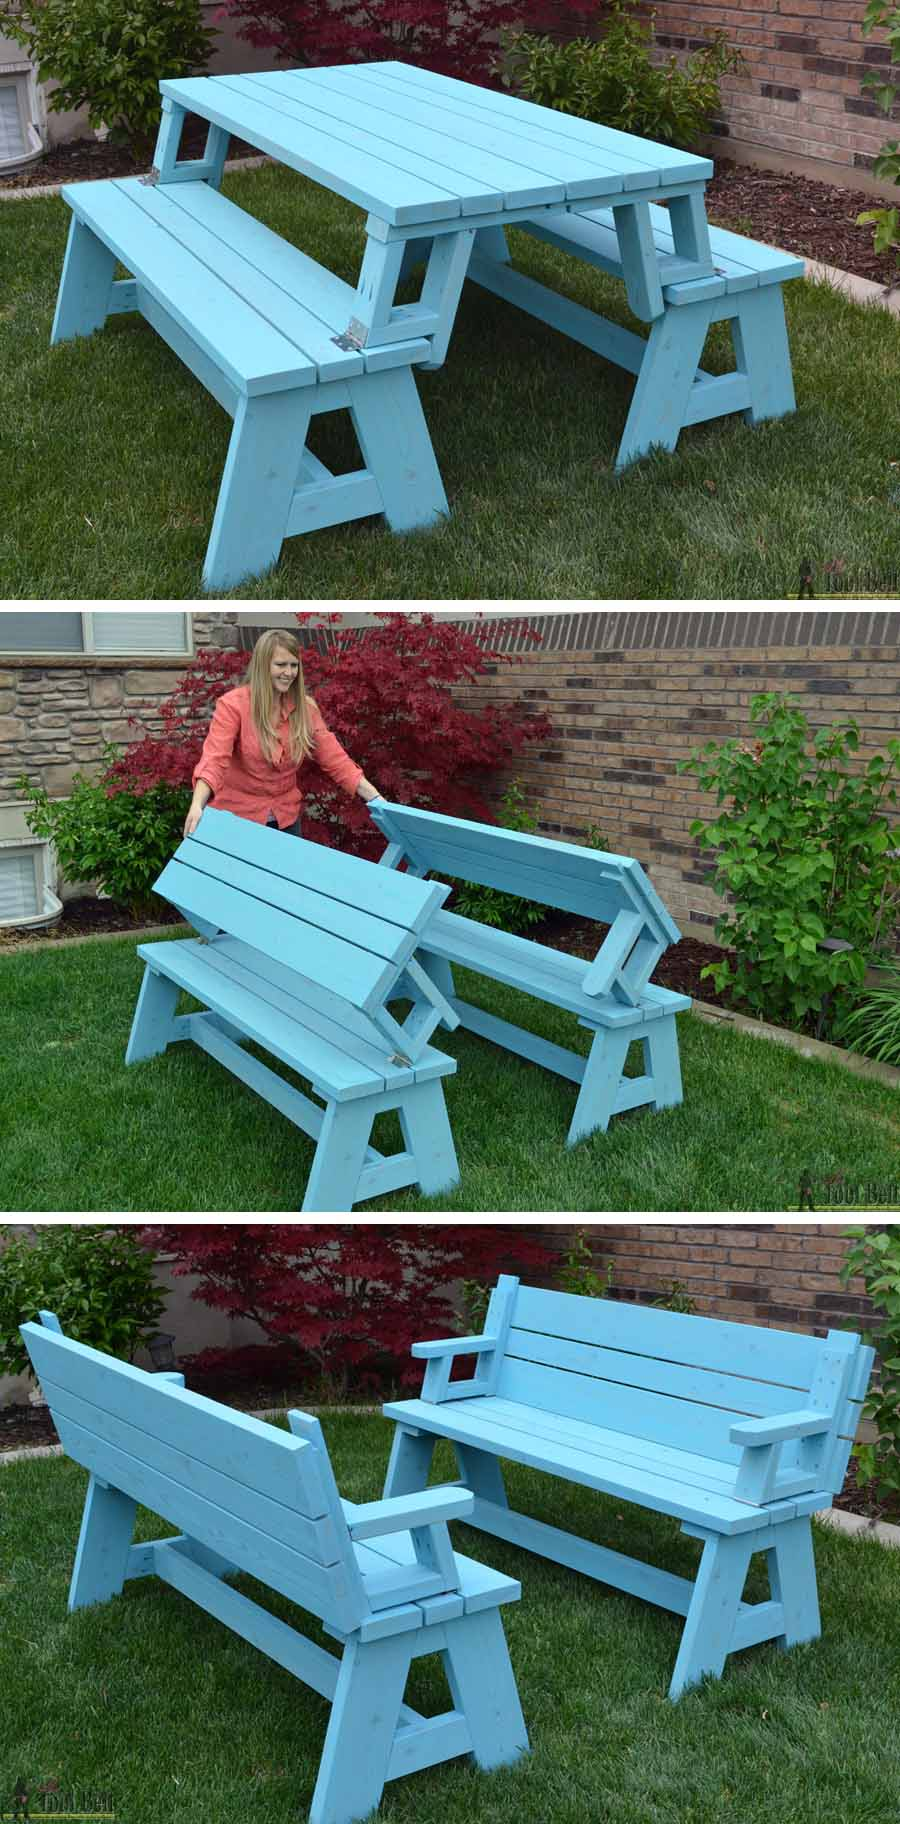 Convertible Picnic Table and Bench - Her Tool Belt